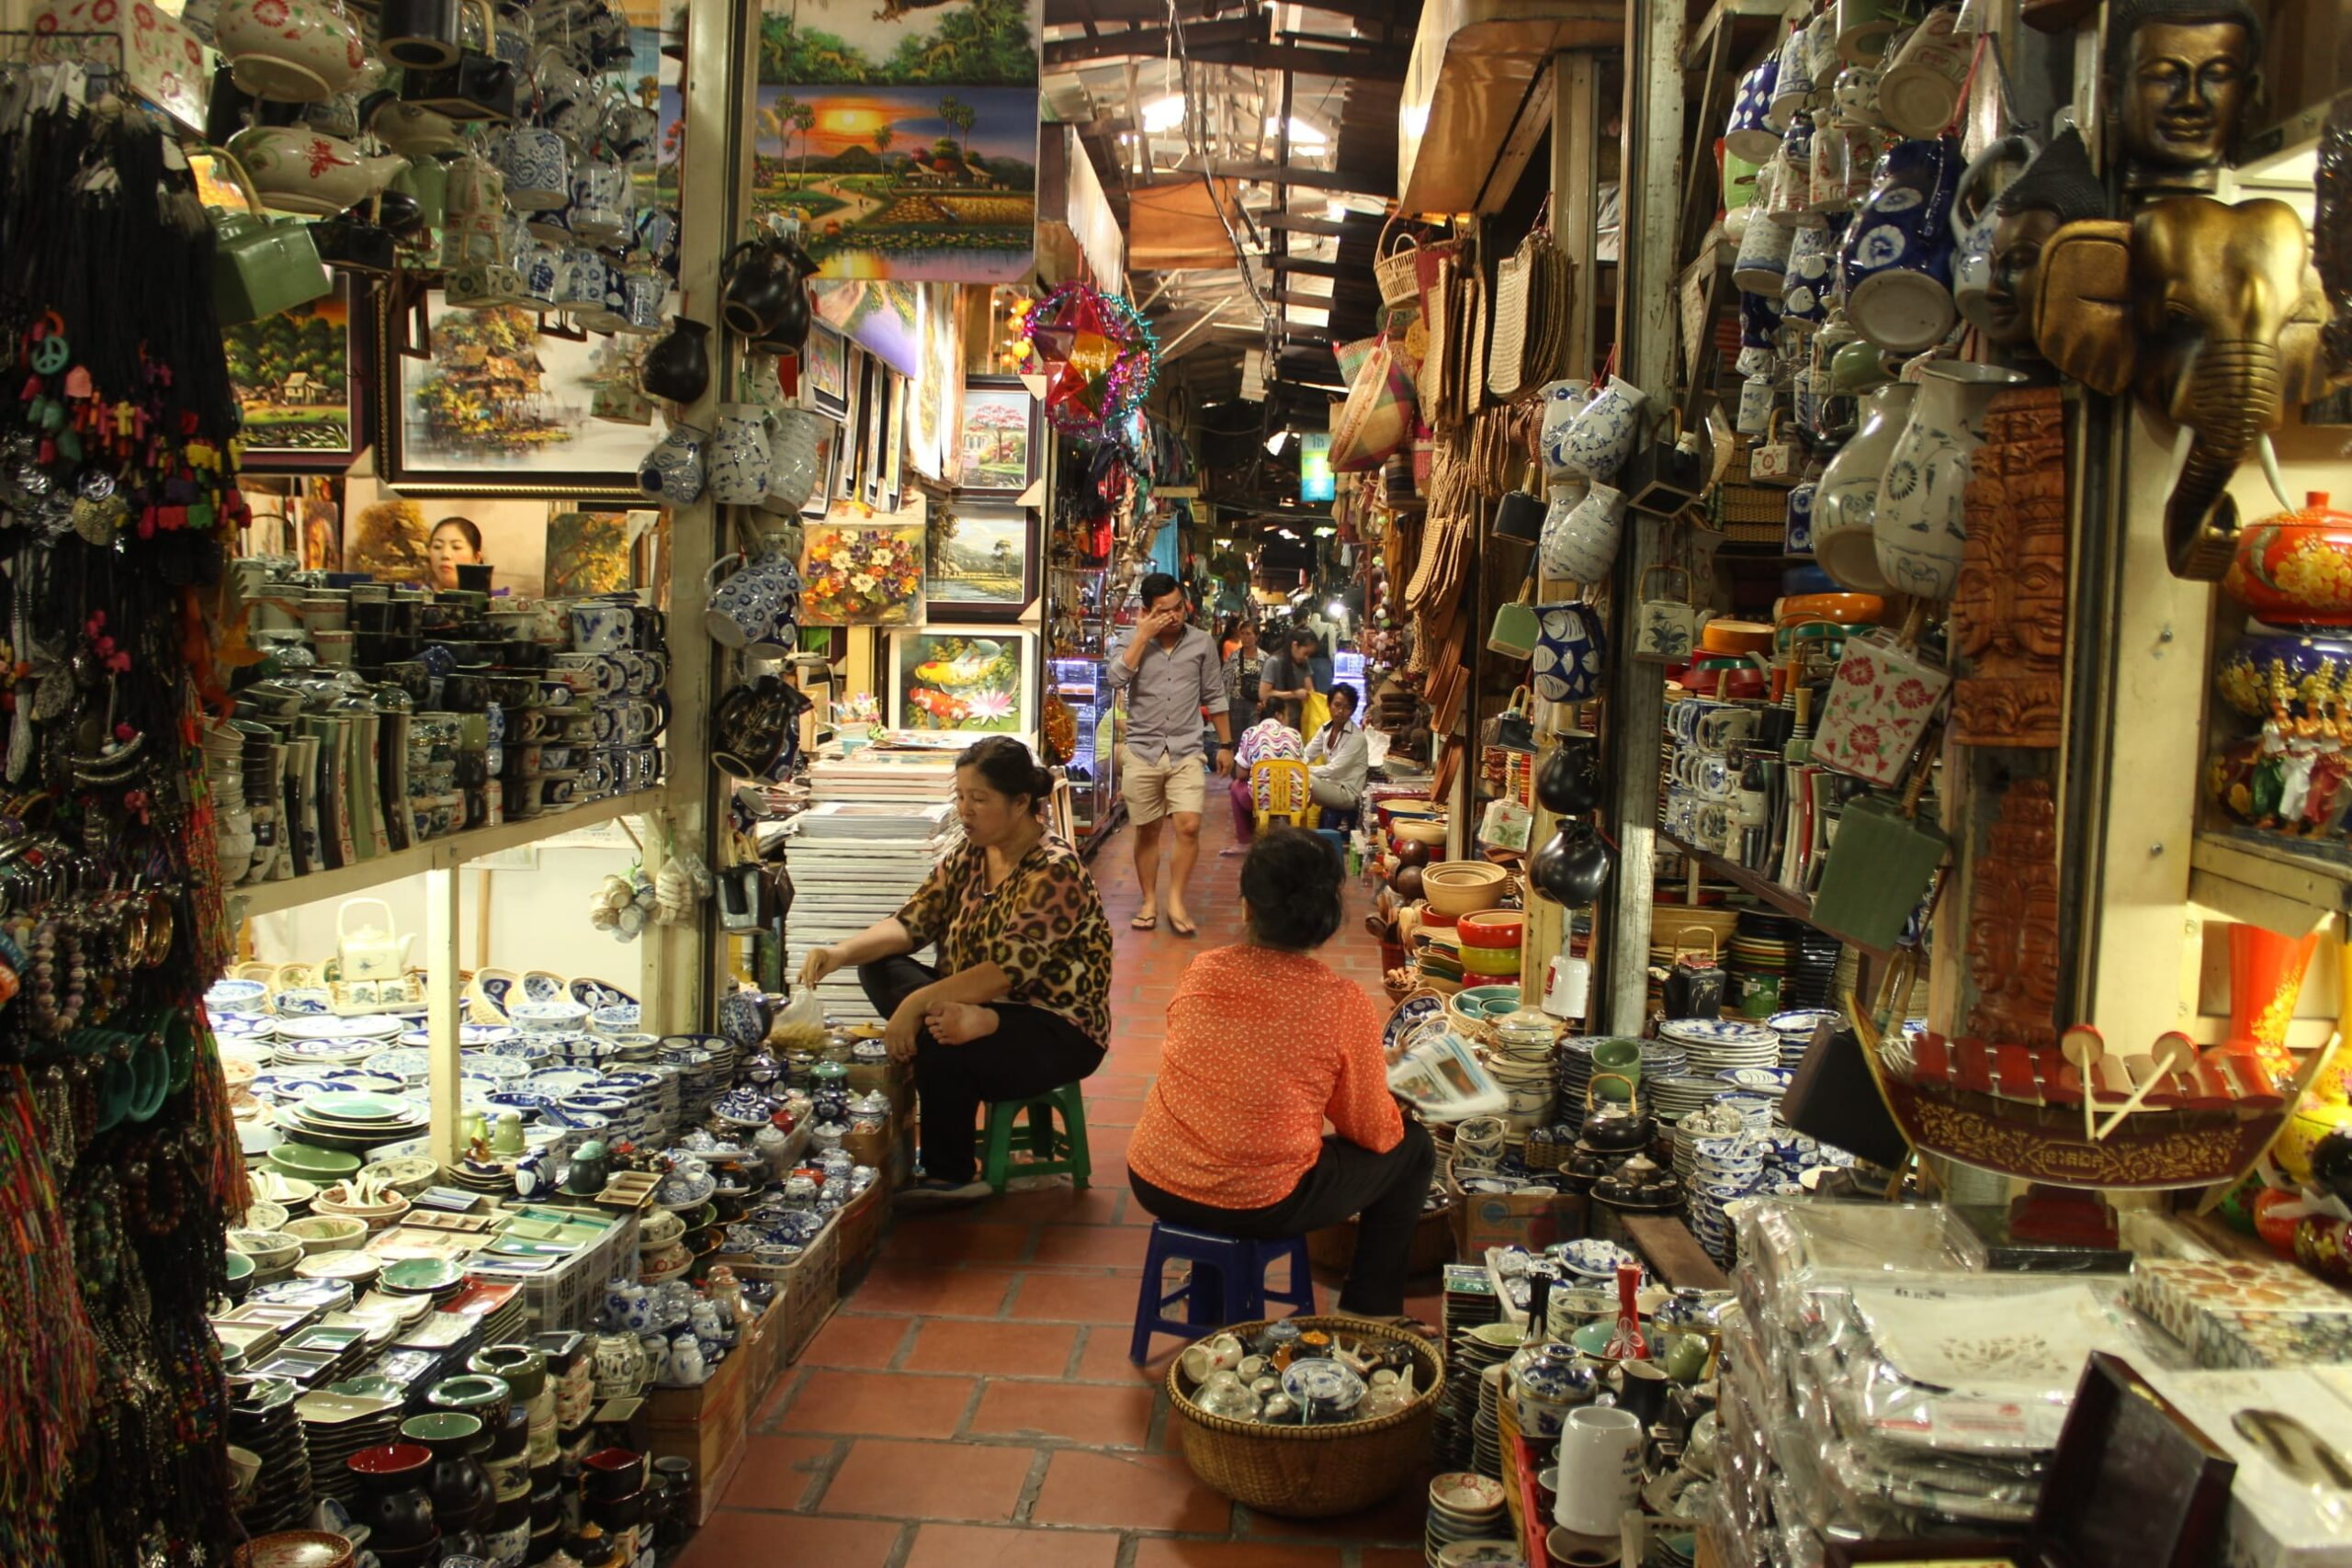 A large number of foreign residents enjoy this market's curios and variety goods【Russian Market】